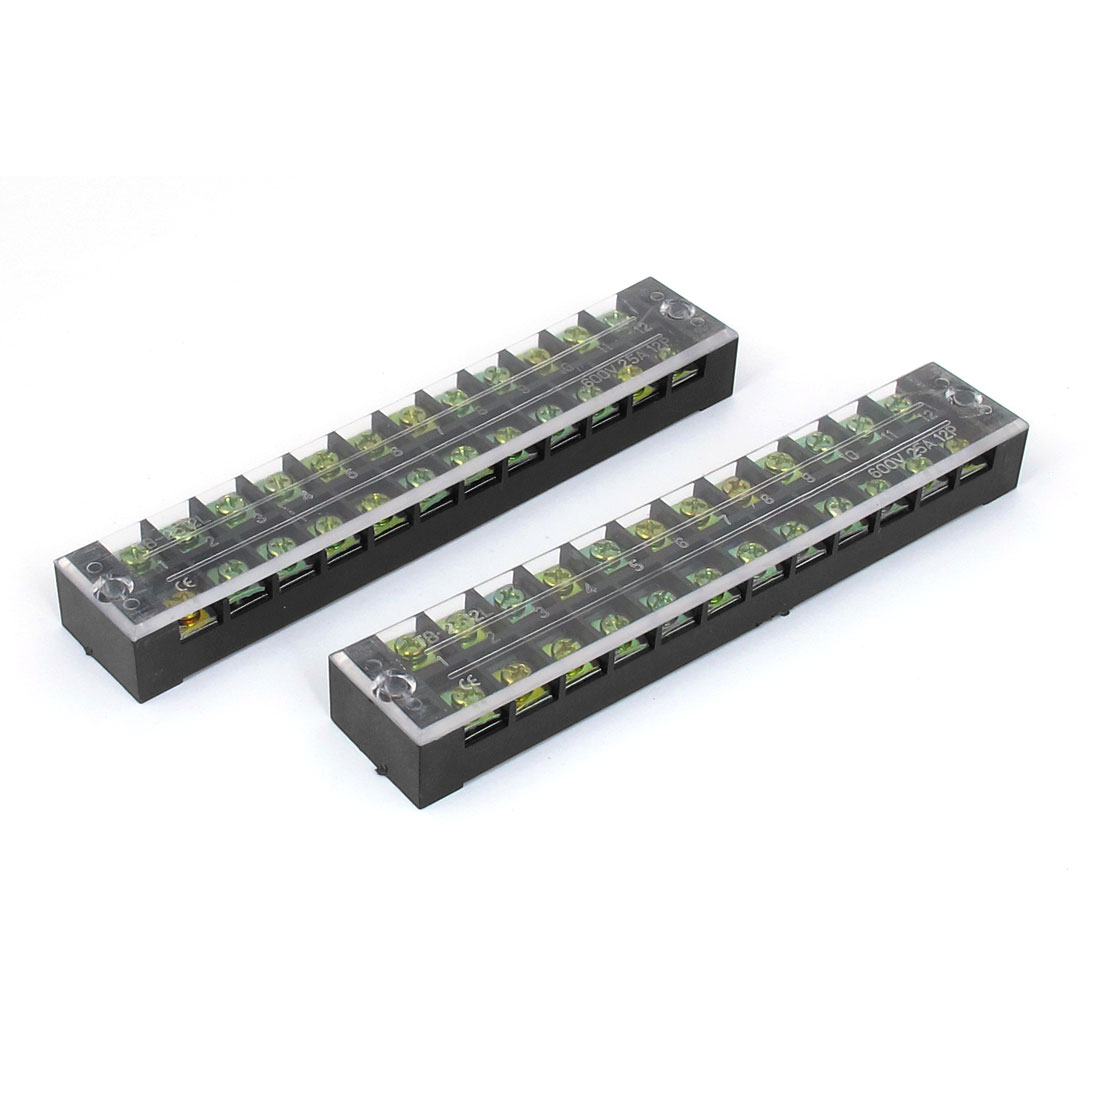 600V 25A 12 Position 12P Double Rows Cable Wiring Barrier Screw Terminal Strip Block 2pcs